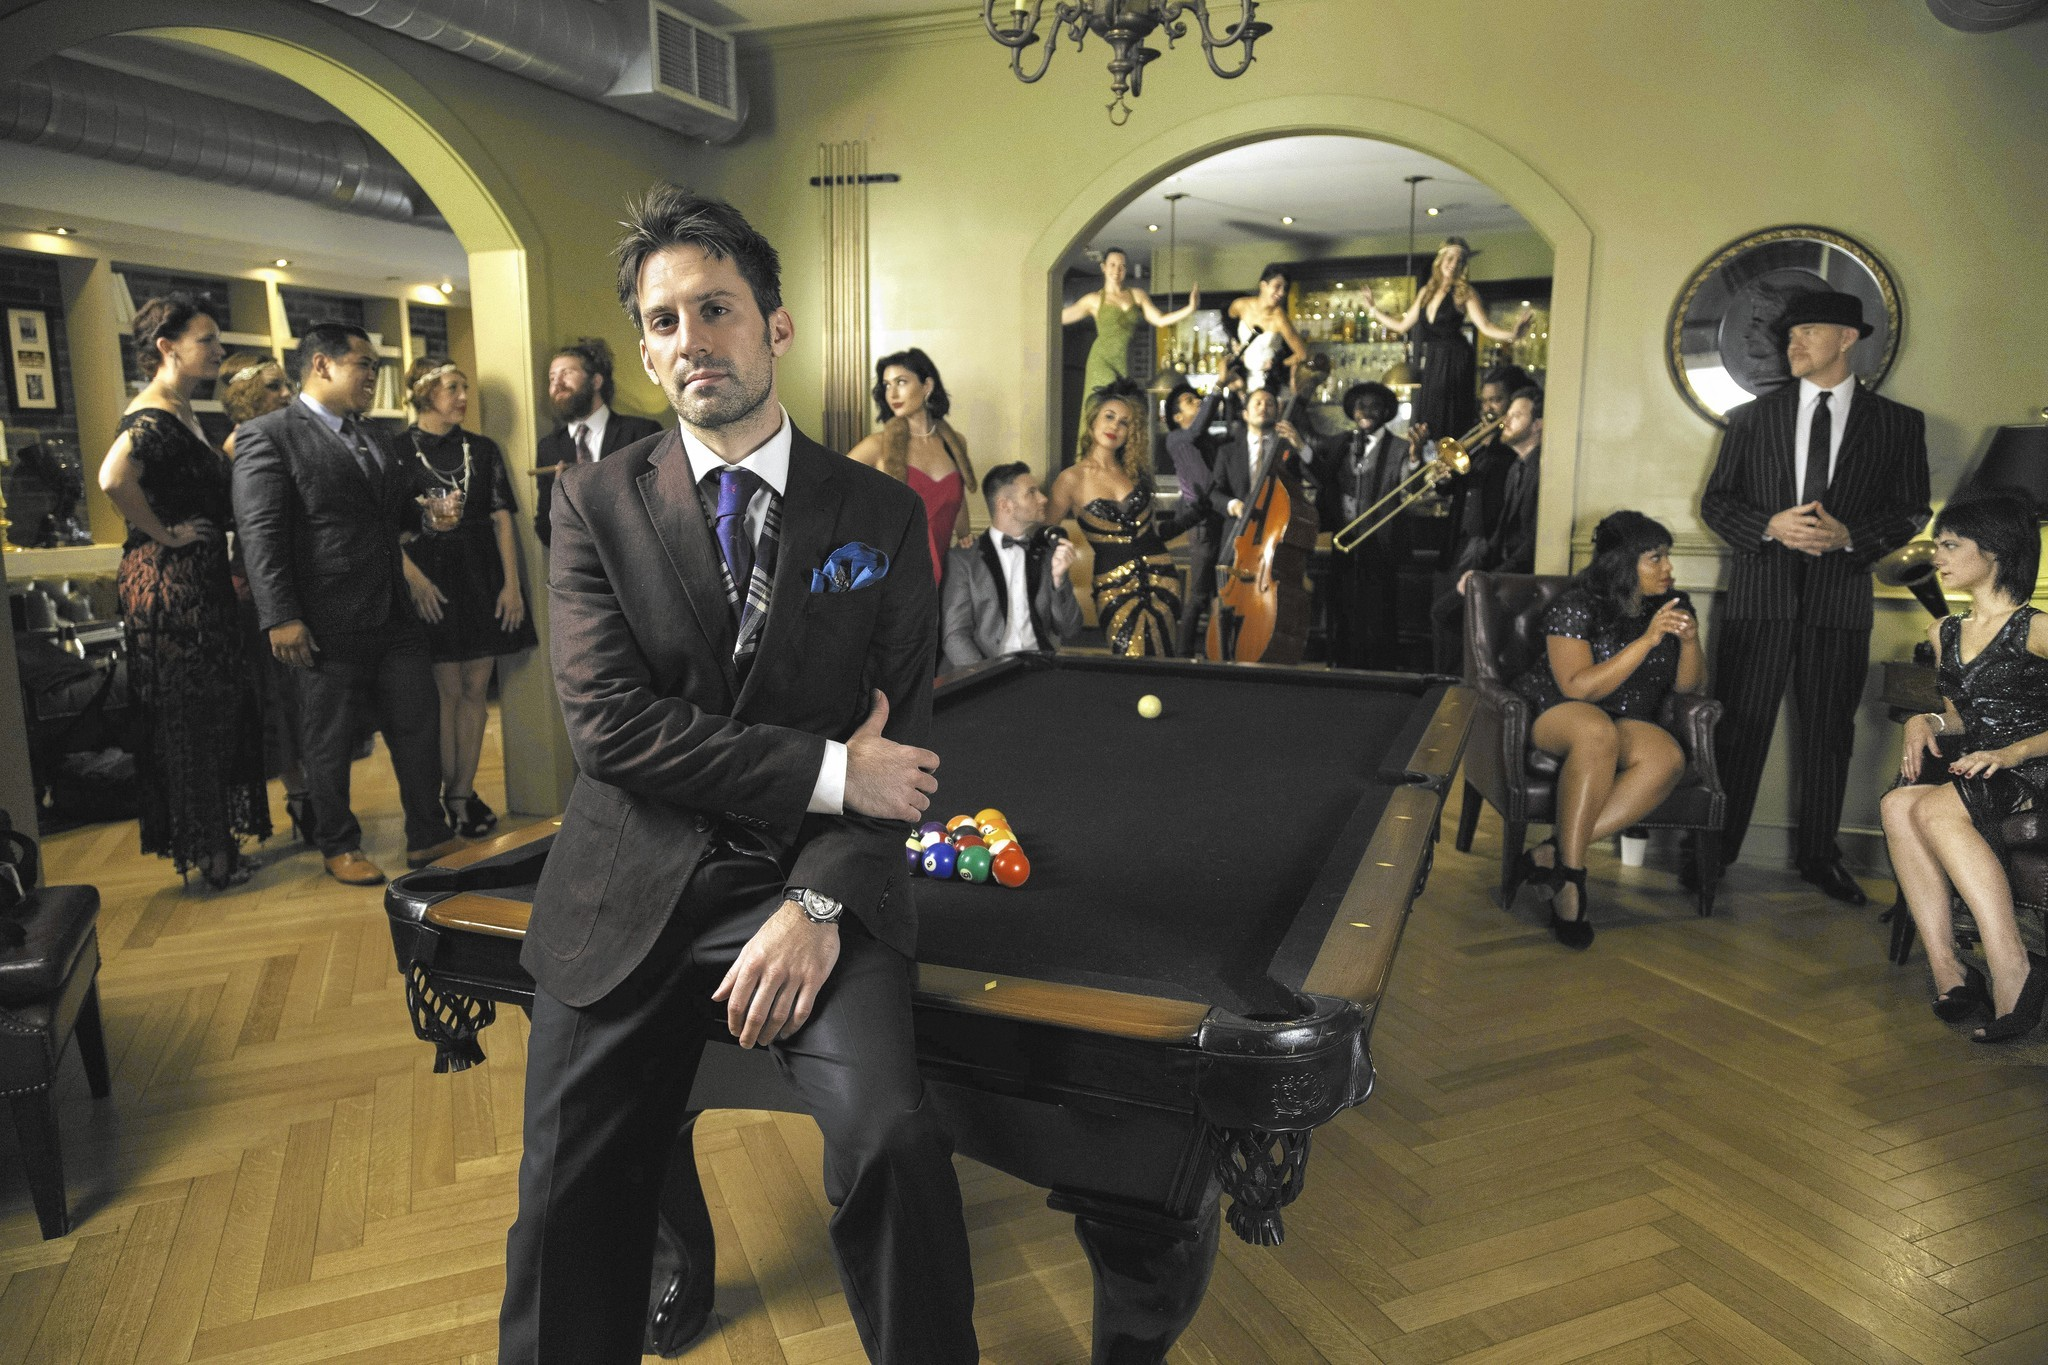 Scott Bradlees Post Modern Jukebox